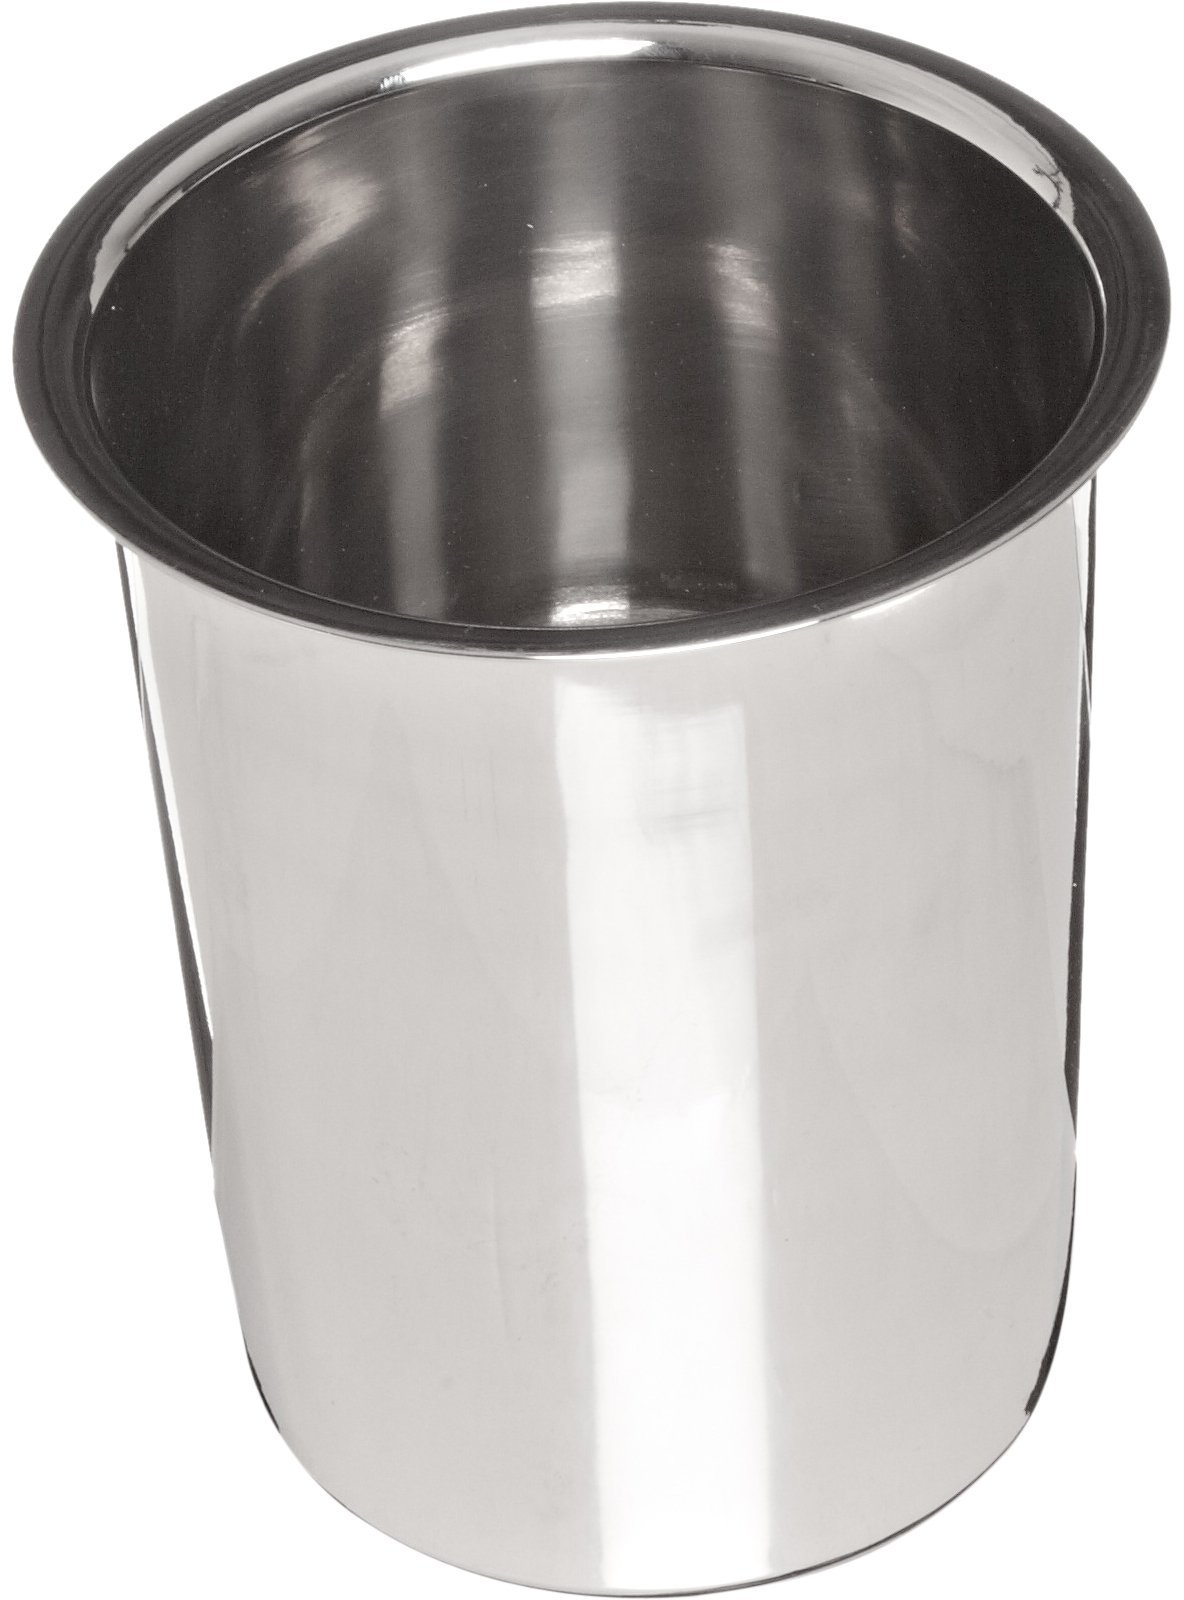 Browne 2 qt Stainless Steel Bain Marie Pot